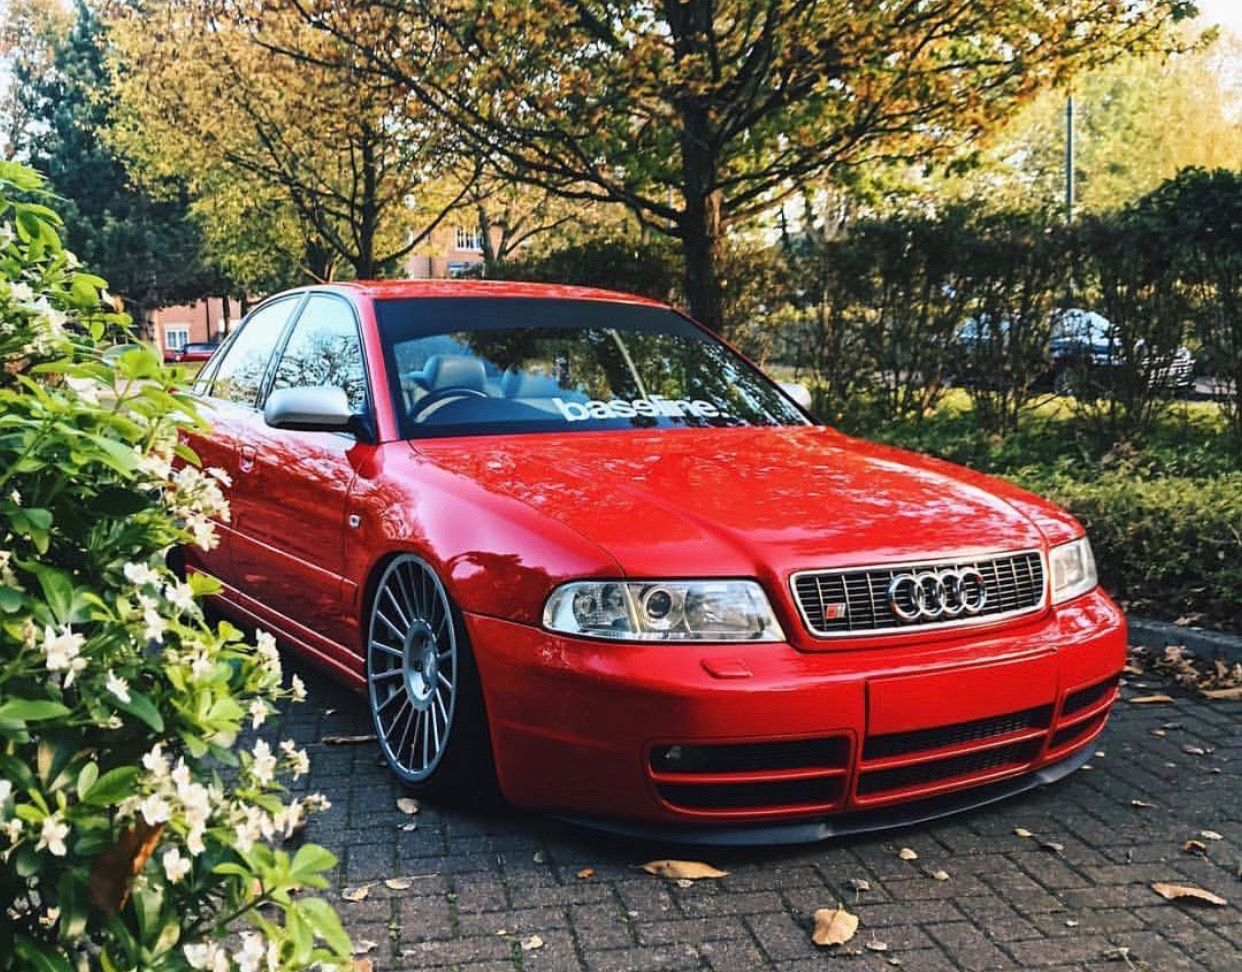 Garage Audi Tours Pin By Brikmann Alex On Car S Pinterest Audi S4 Audi A4 And Cars